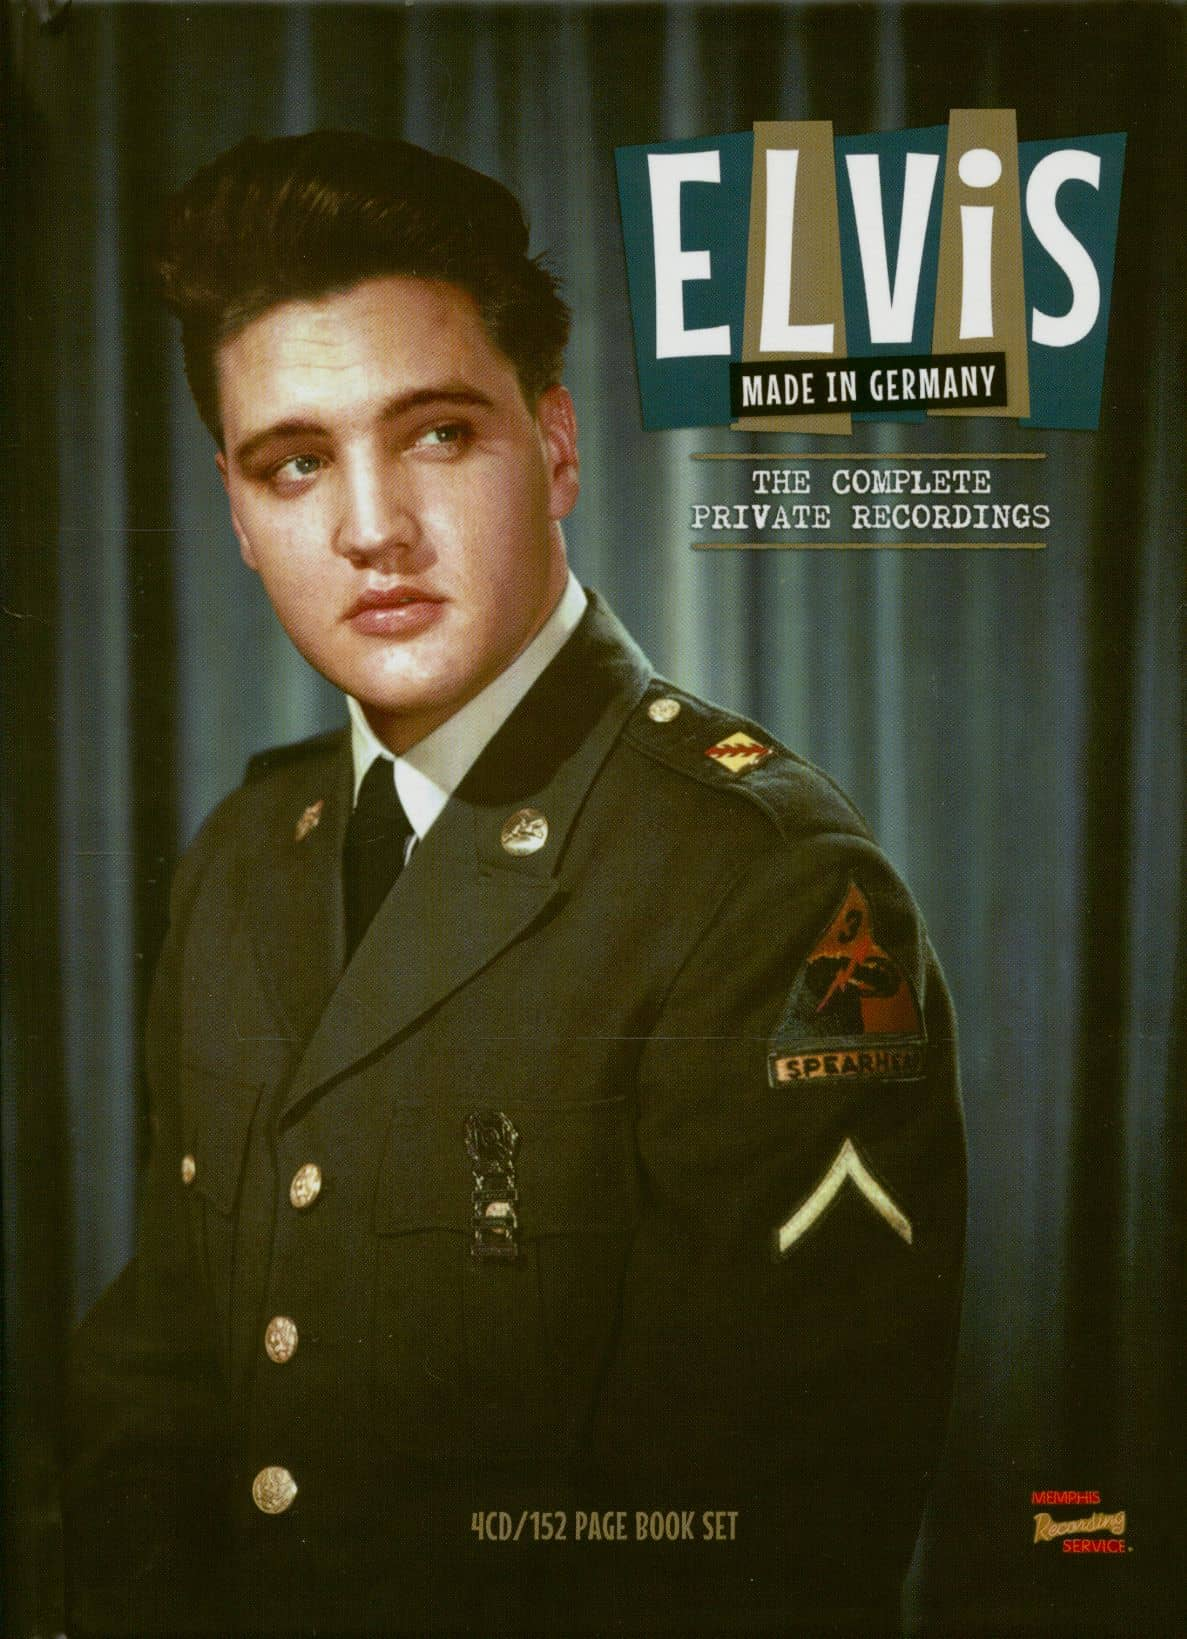 he touched me by elvis presley free download